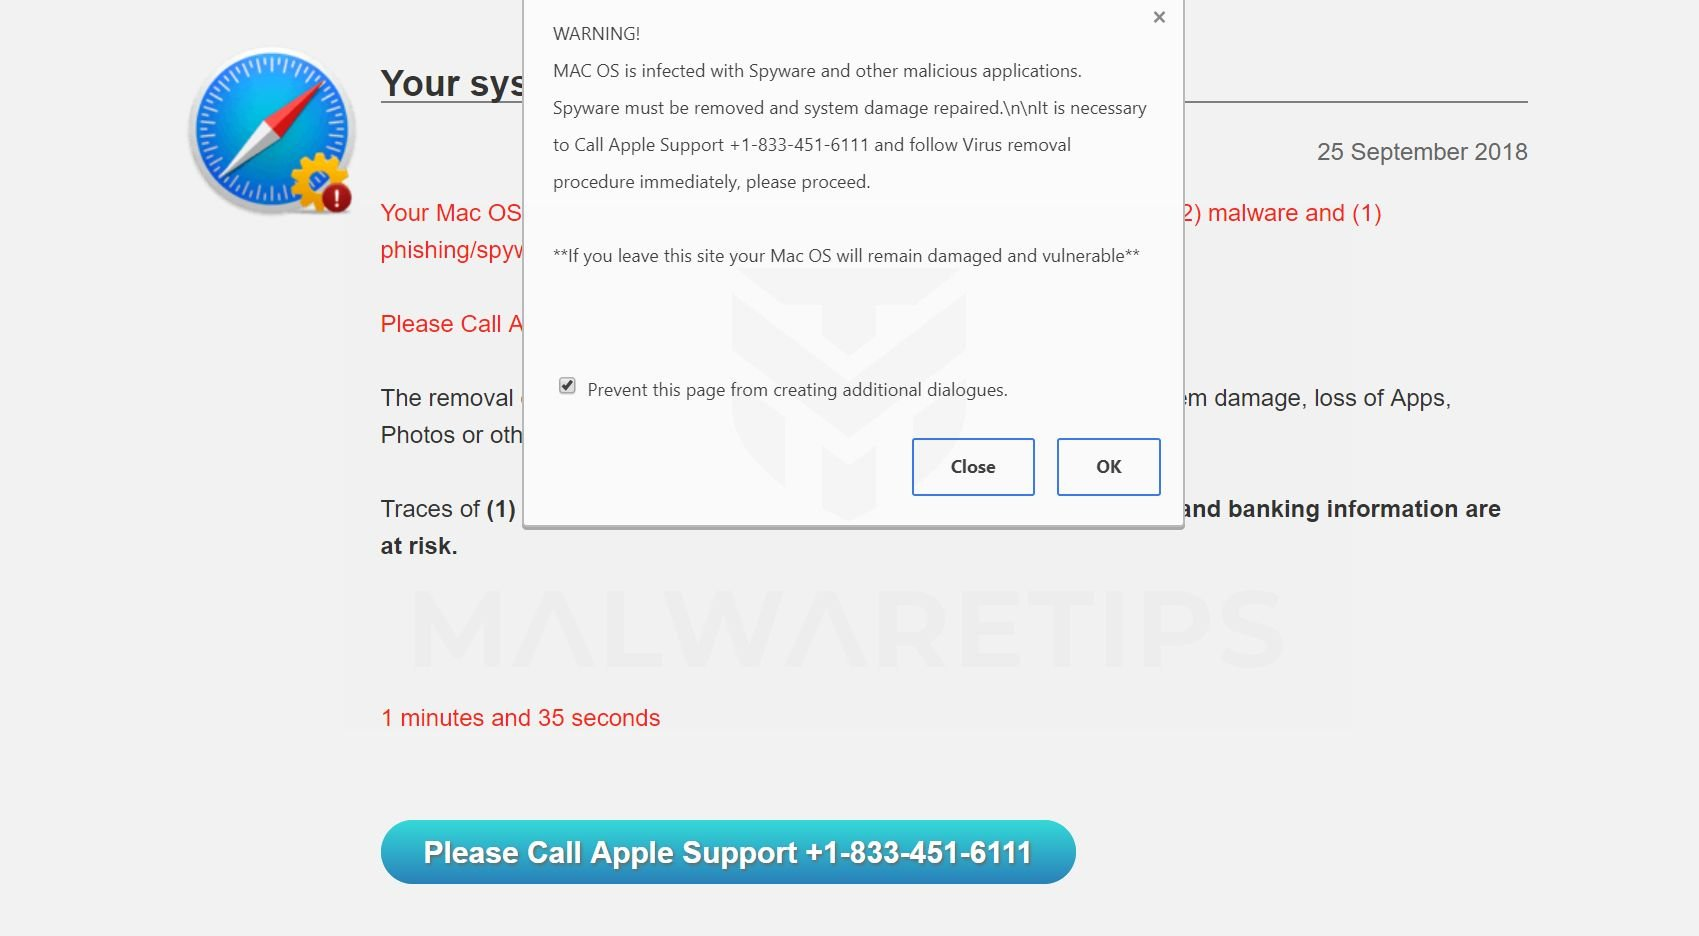 WARNING! MAC OS Is Infected Pop-up Scam virus